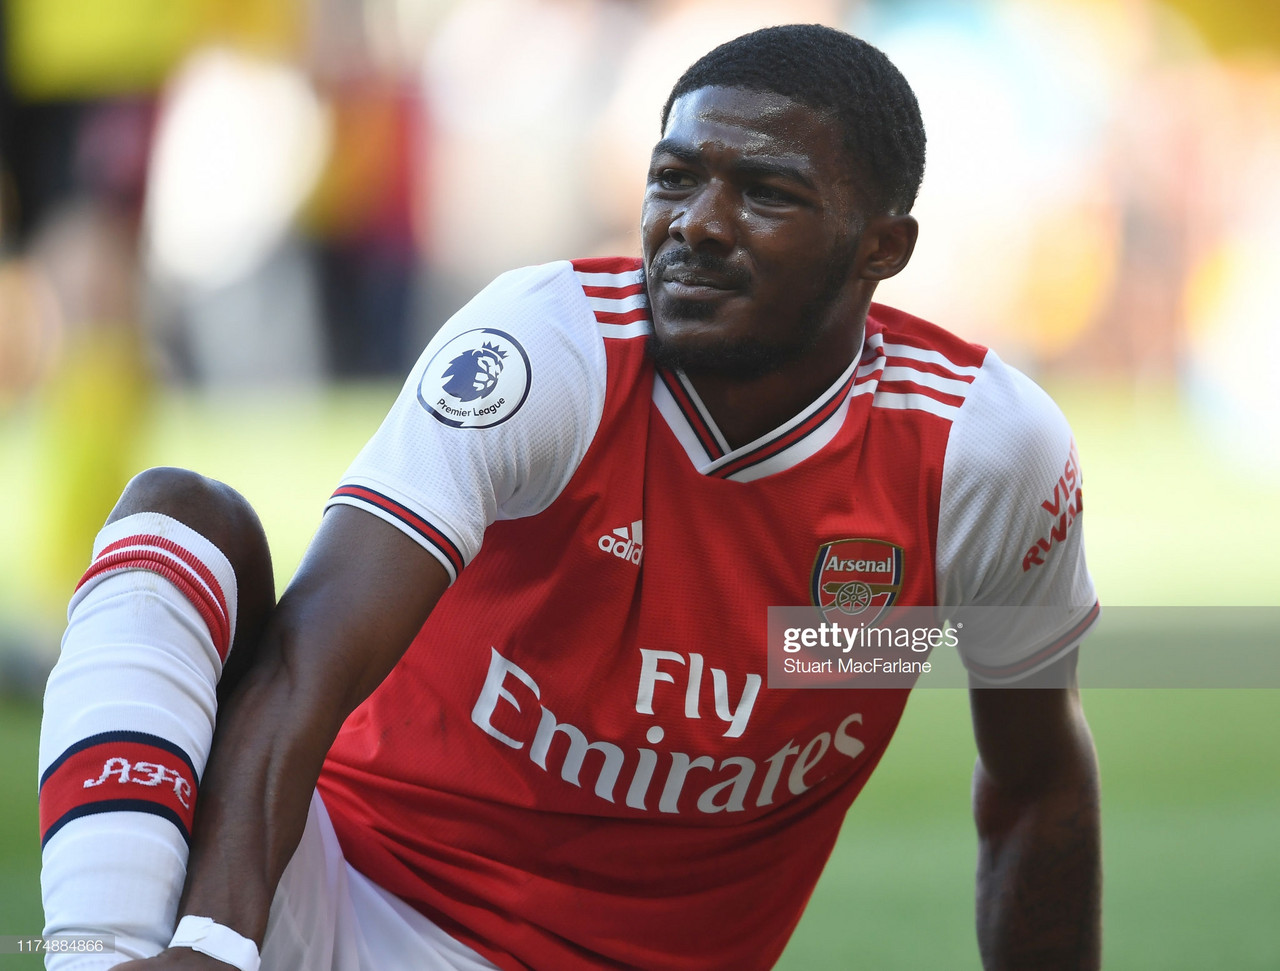 Maitland-Niles admits defensive struggles and eyes return to midfield